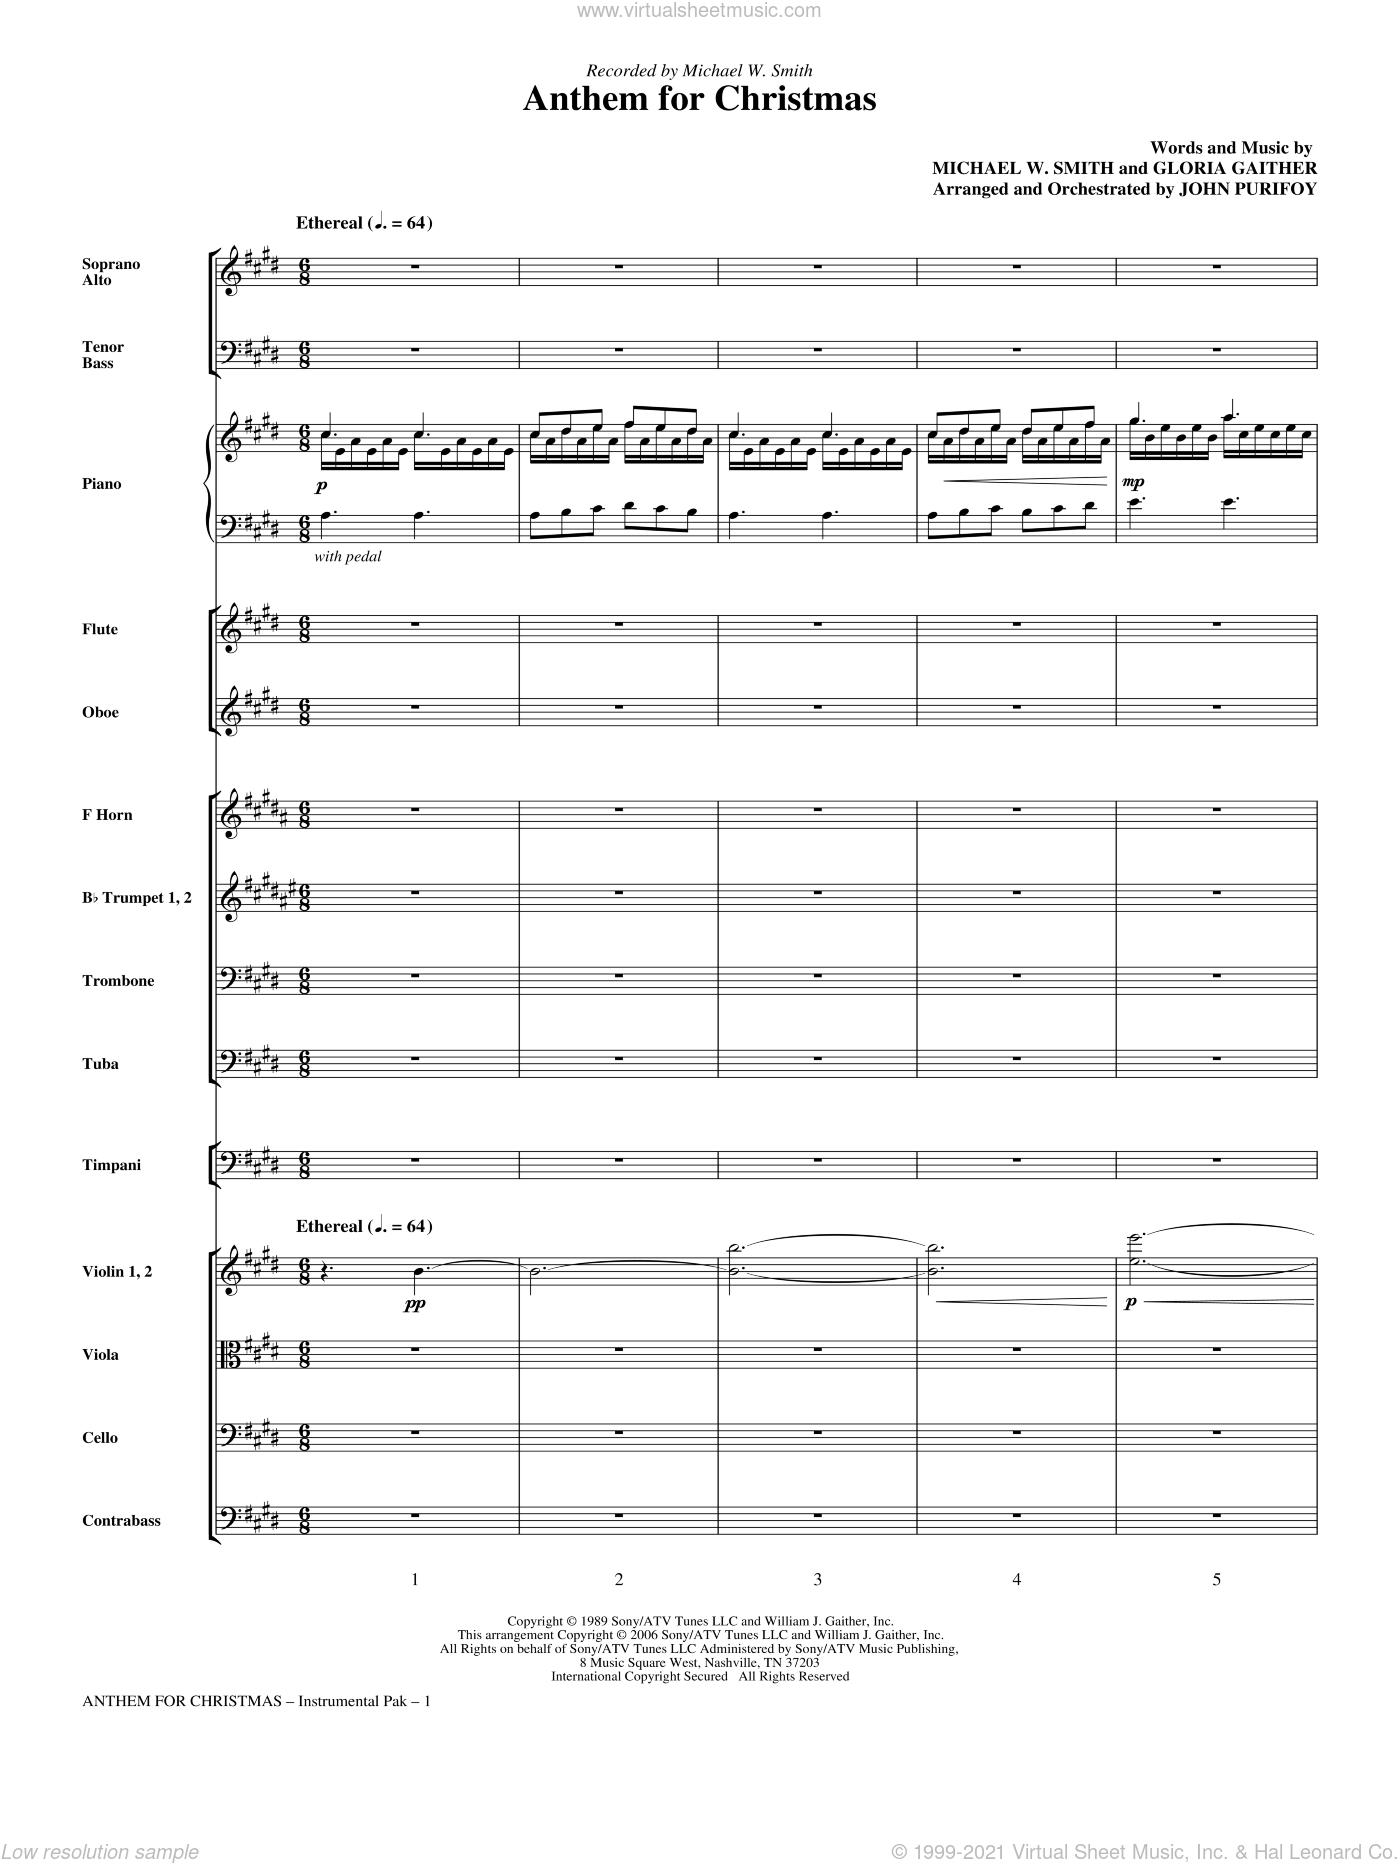 Anthem for Christmas sheet music for orchestra/band (full score) by Michael W. Smith, Gloria Gaither and John Purifoy, intermediate skill level